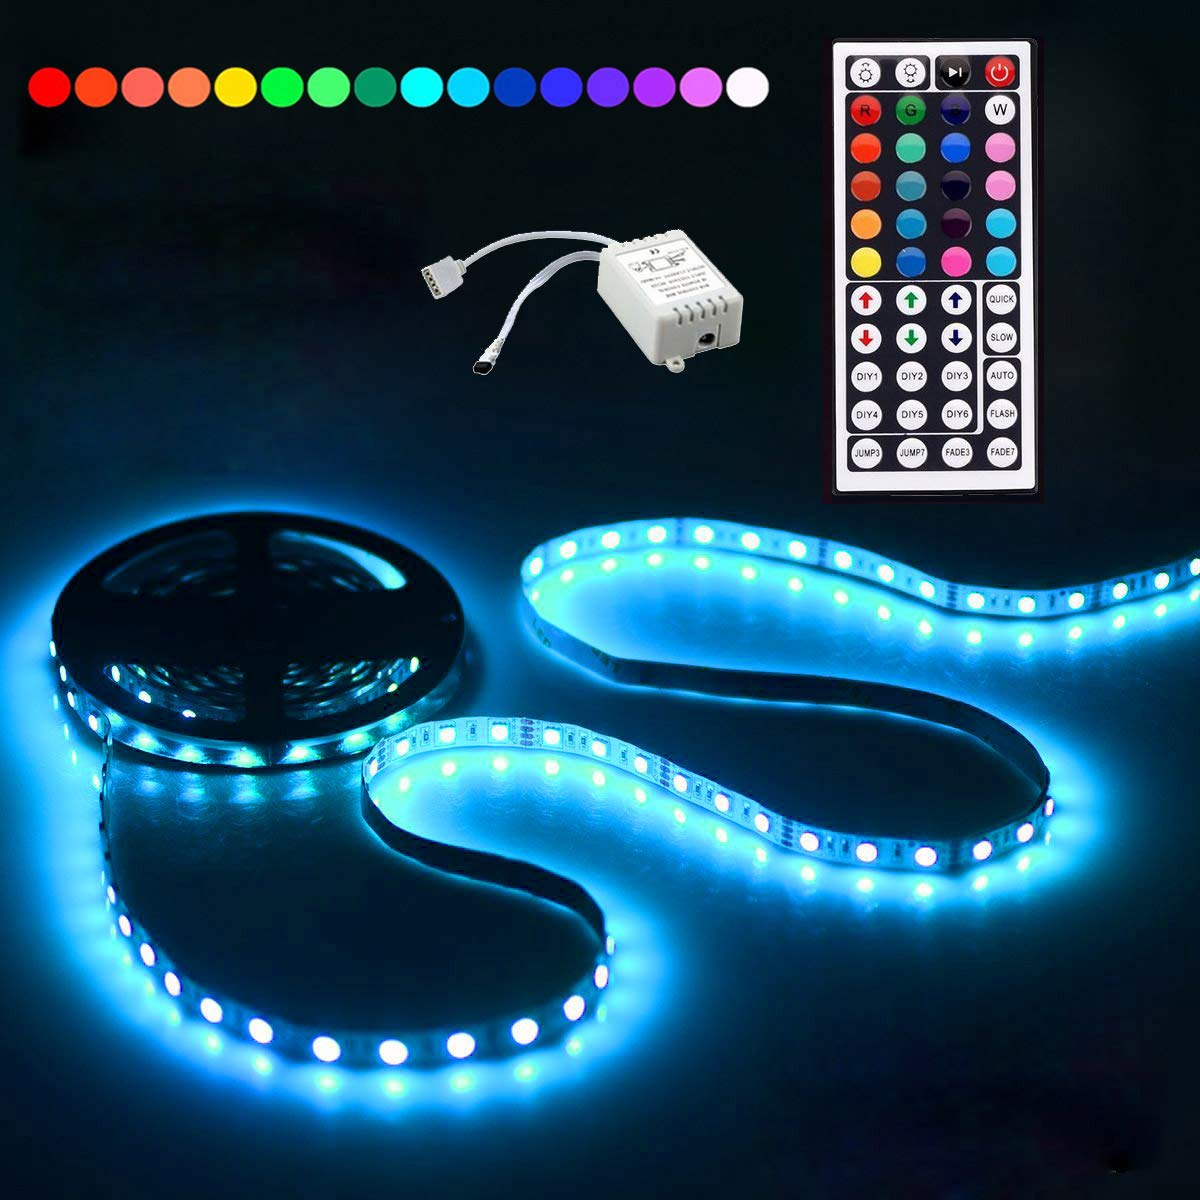 Led Strip Lighting 5M 16.4 Ft 5050 RGB 150LEDs Flexible Color Changing Full Kit with 44 Keys IR Remote Controller, Control Box,12V 2A Power Supply,Not-Waterproof